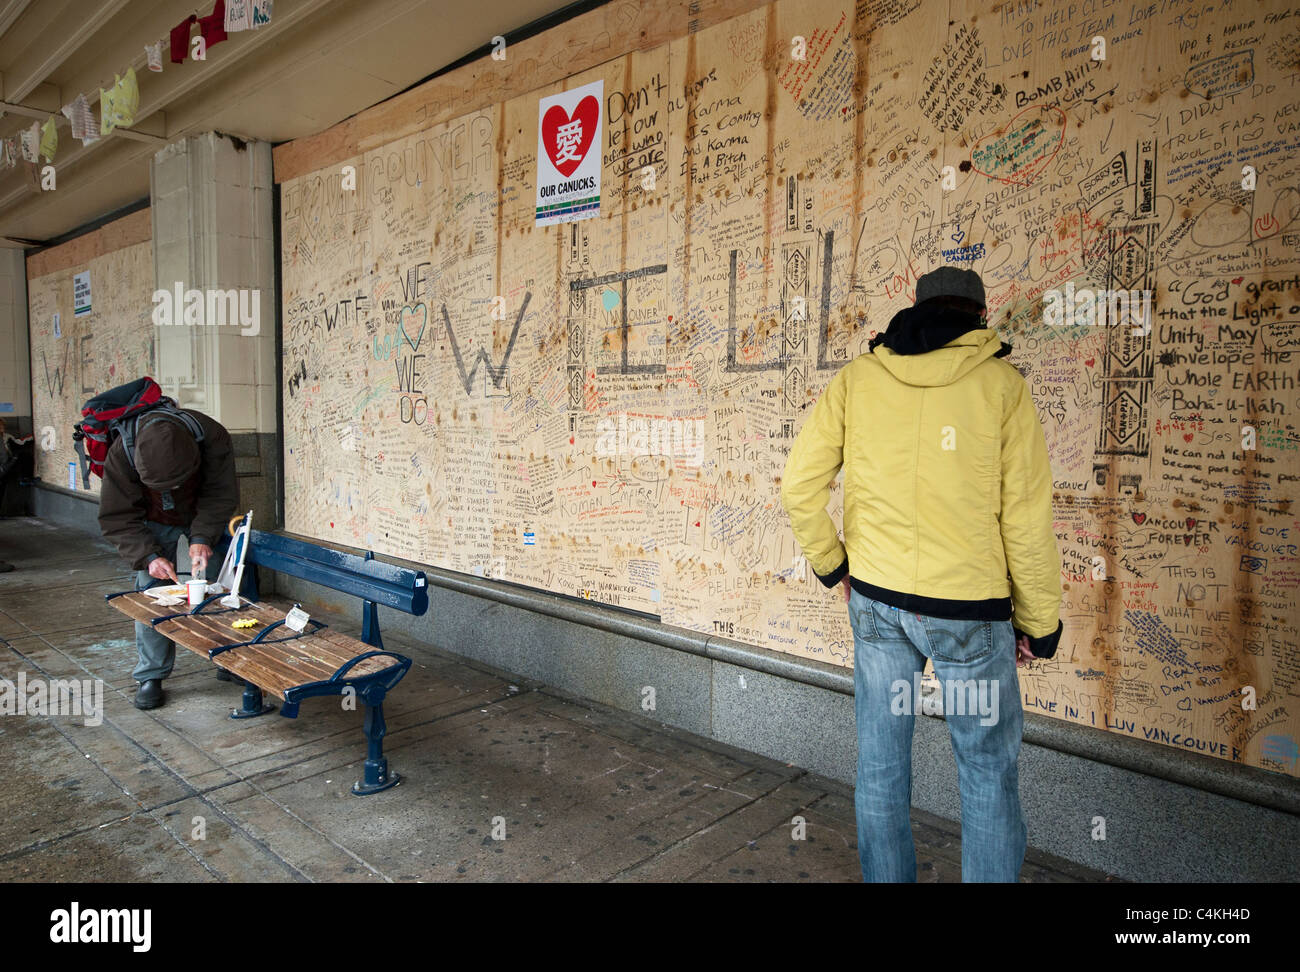 Boarded up windows with written messages at Hudson Bay store in downtown Vancouver after 2011 hockey riot - Stock Image